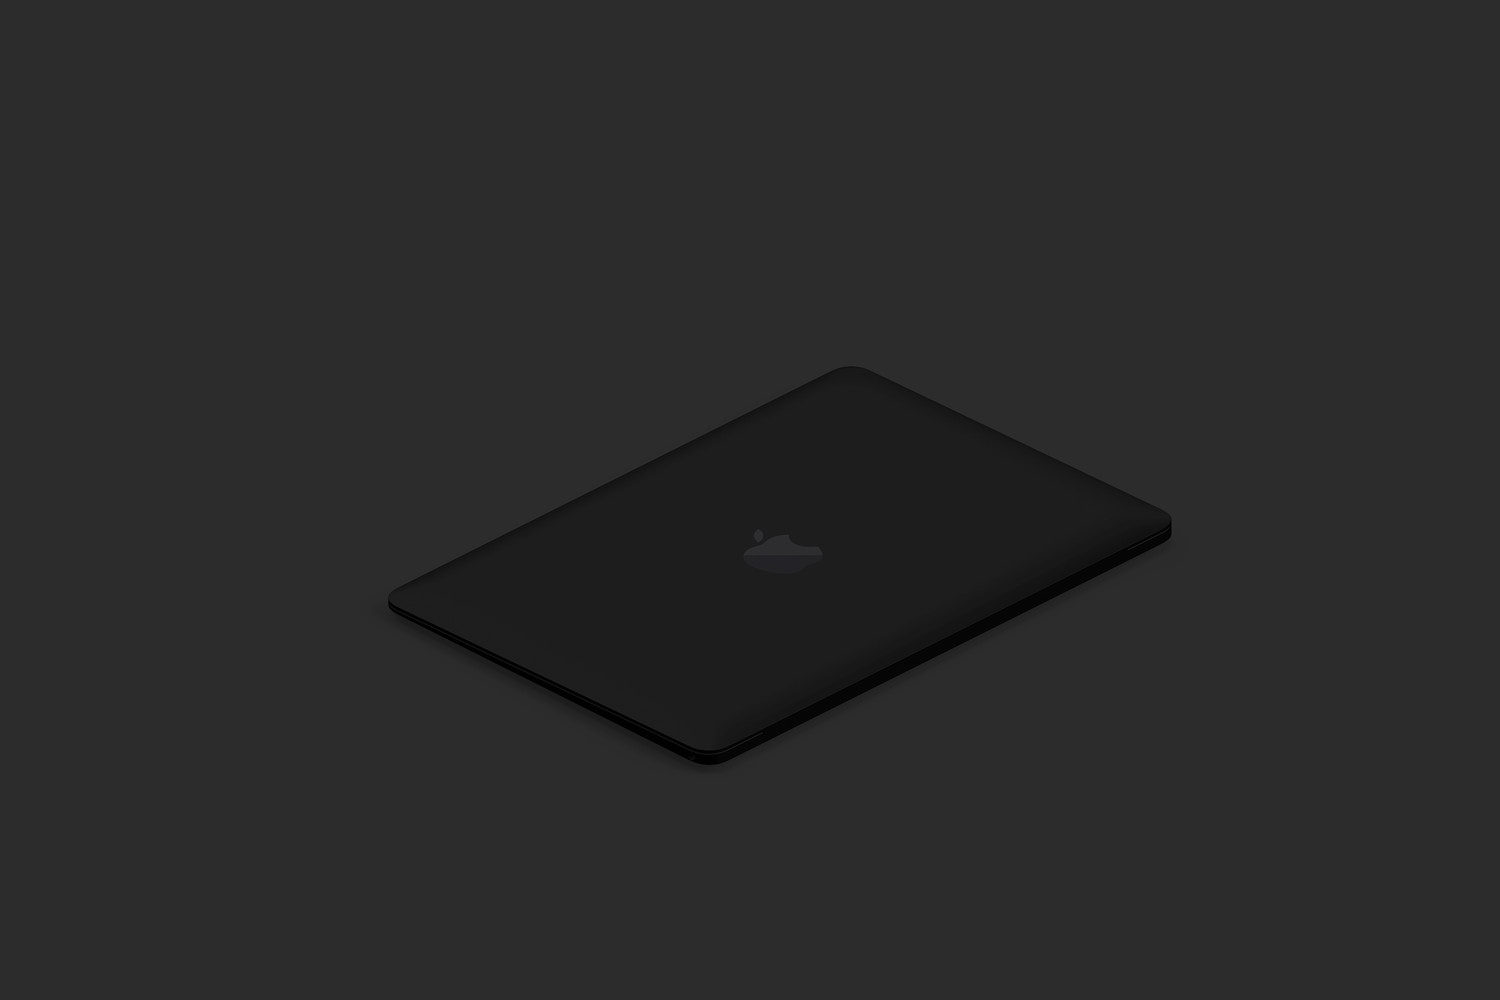 Clay MacBook Mockup, Isometric Left View 03 (5) by Original Mockups on Original Mockups